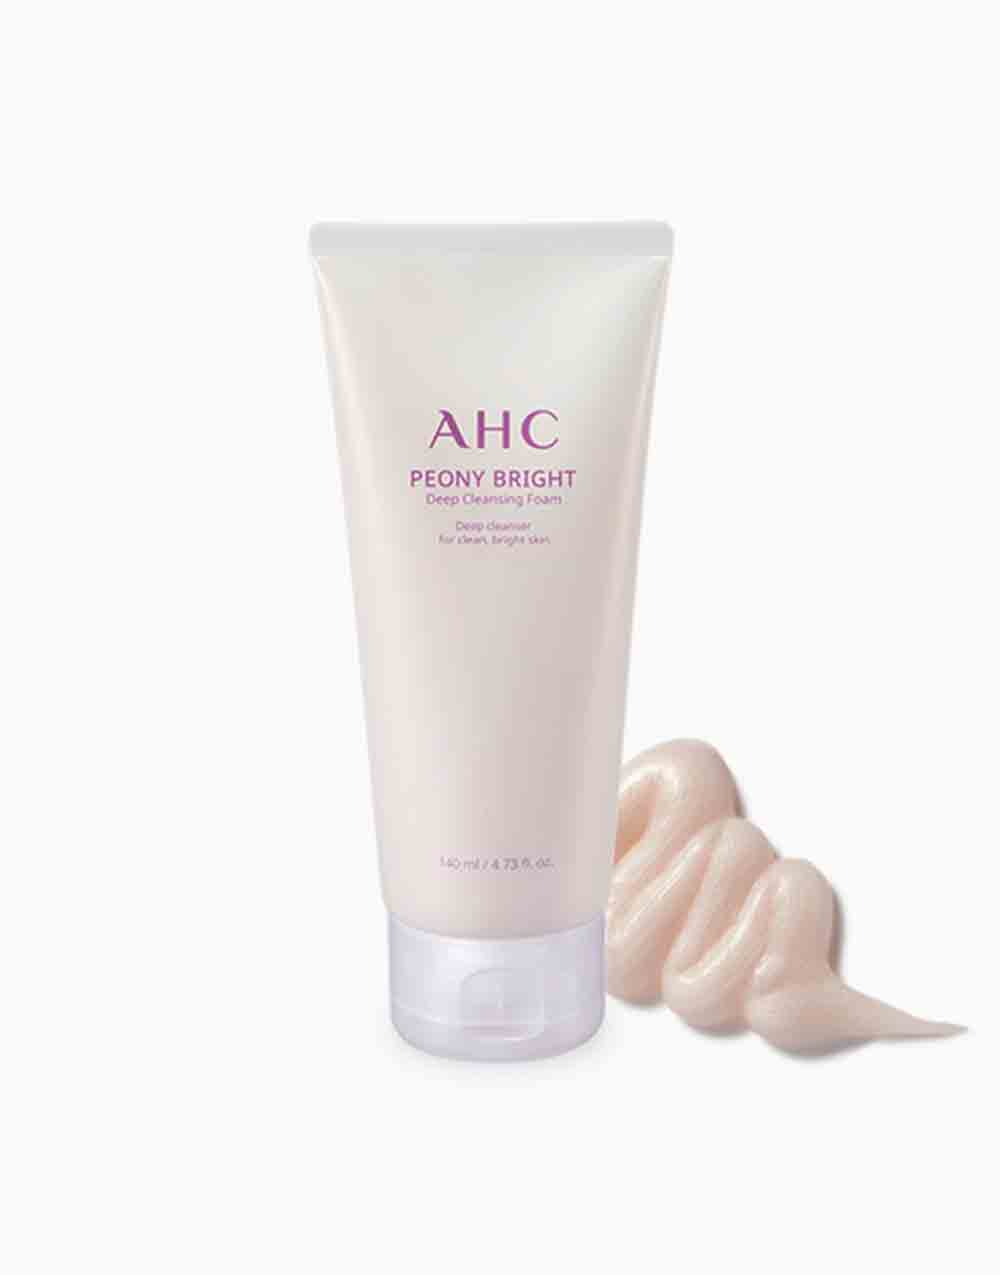 Peony Bright Deep Cleansing Foam (140ml) by AHC